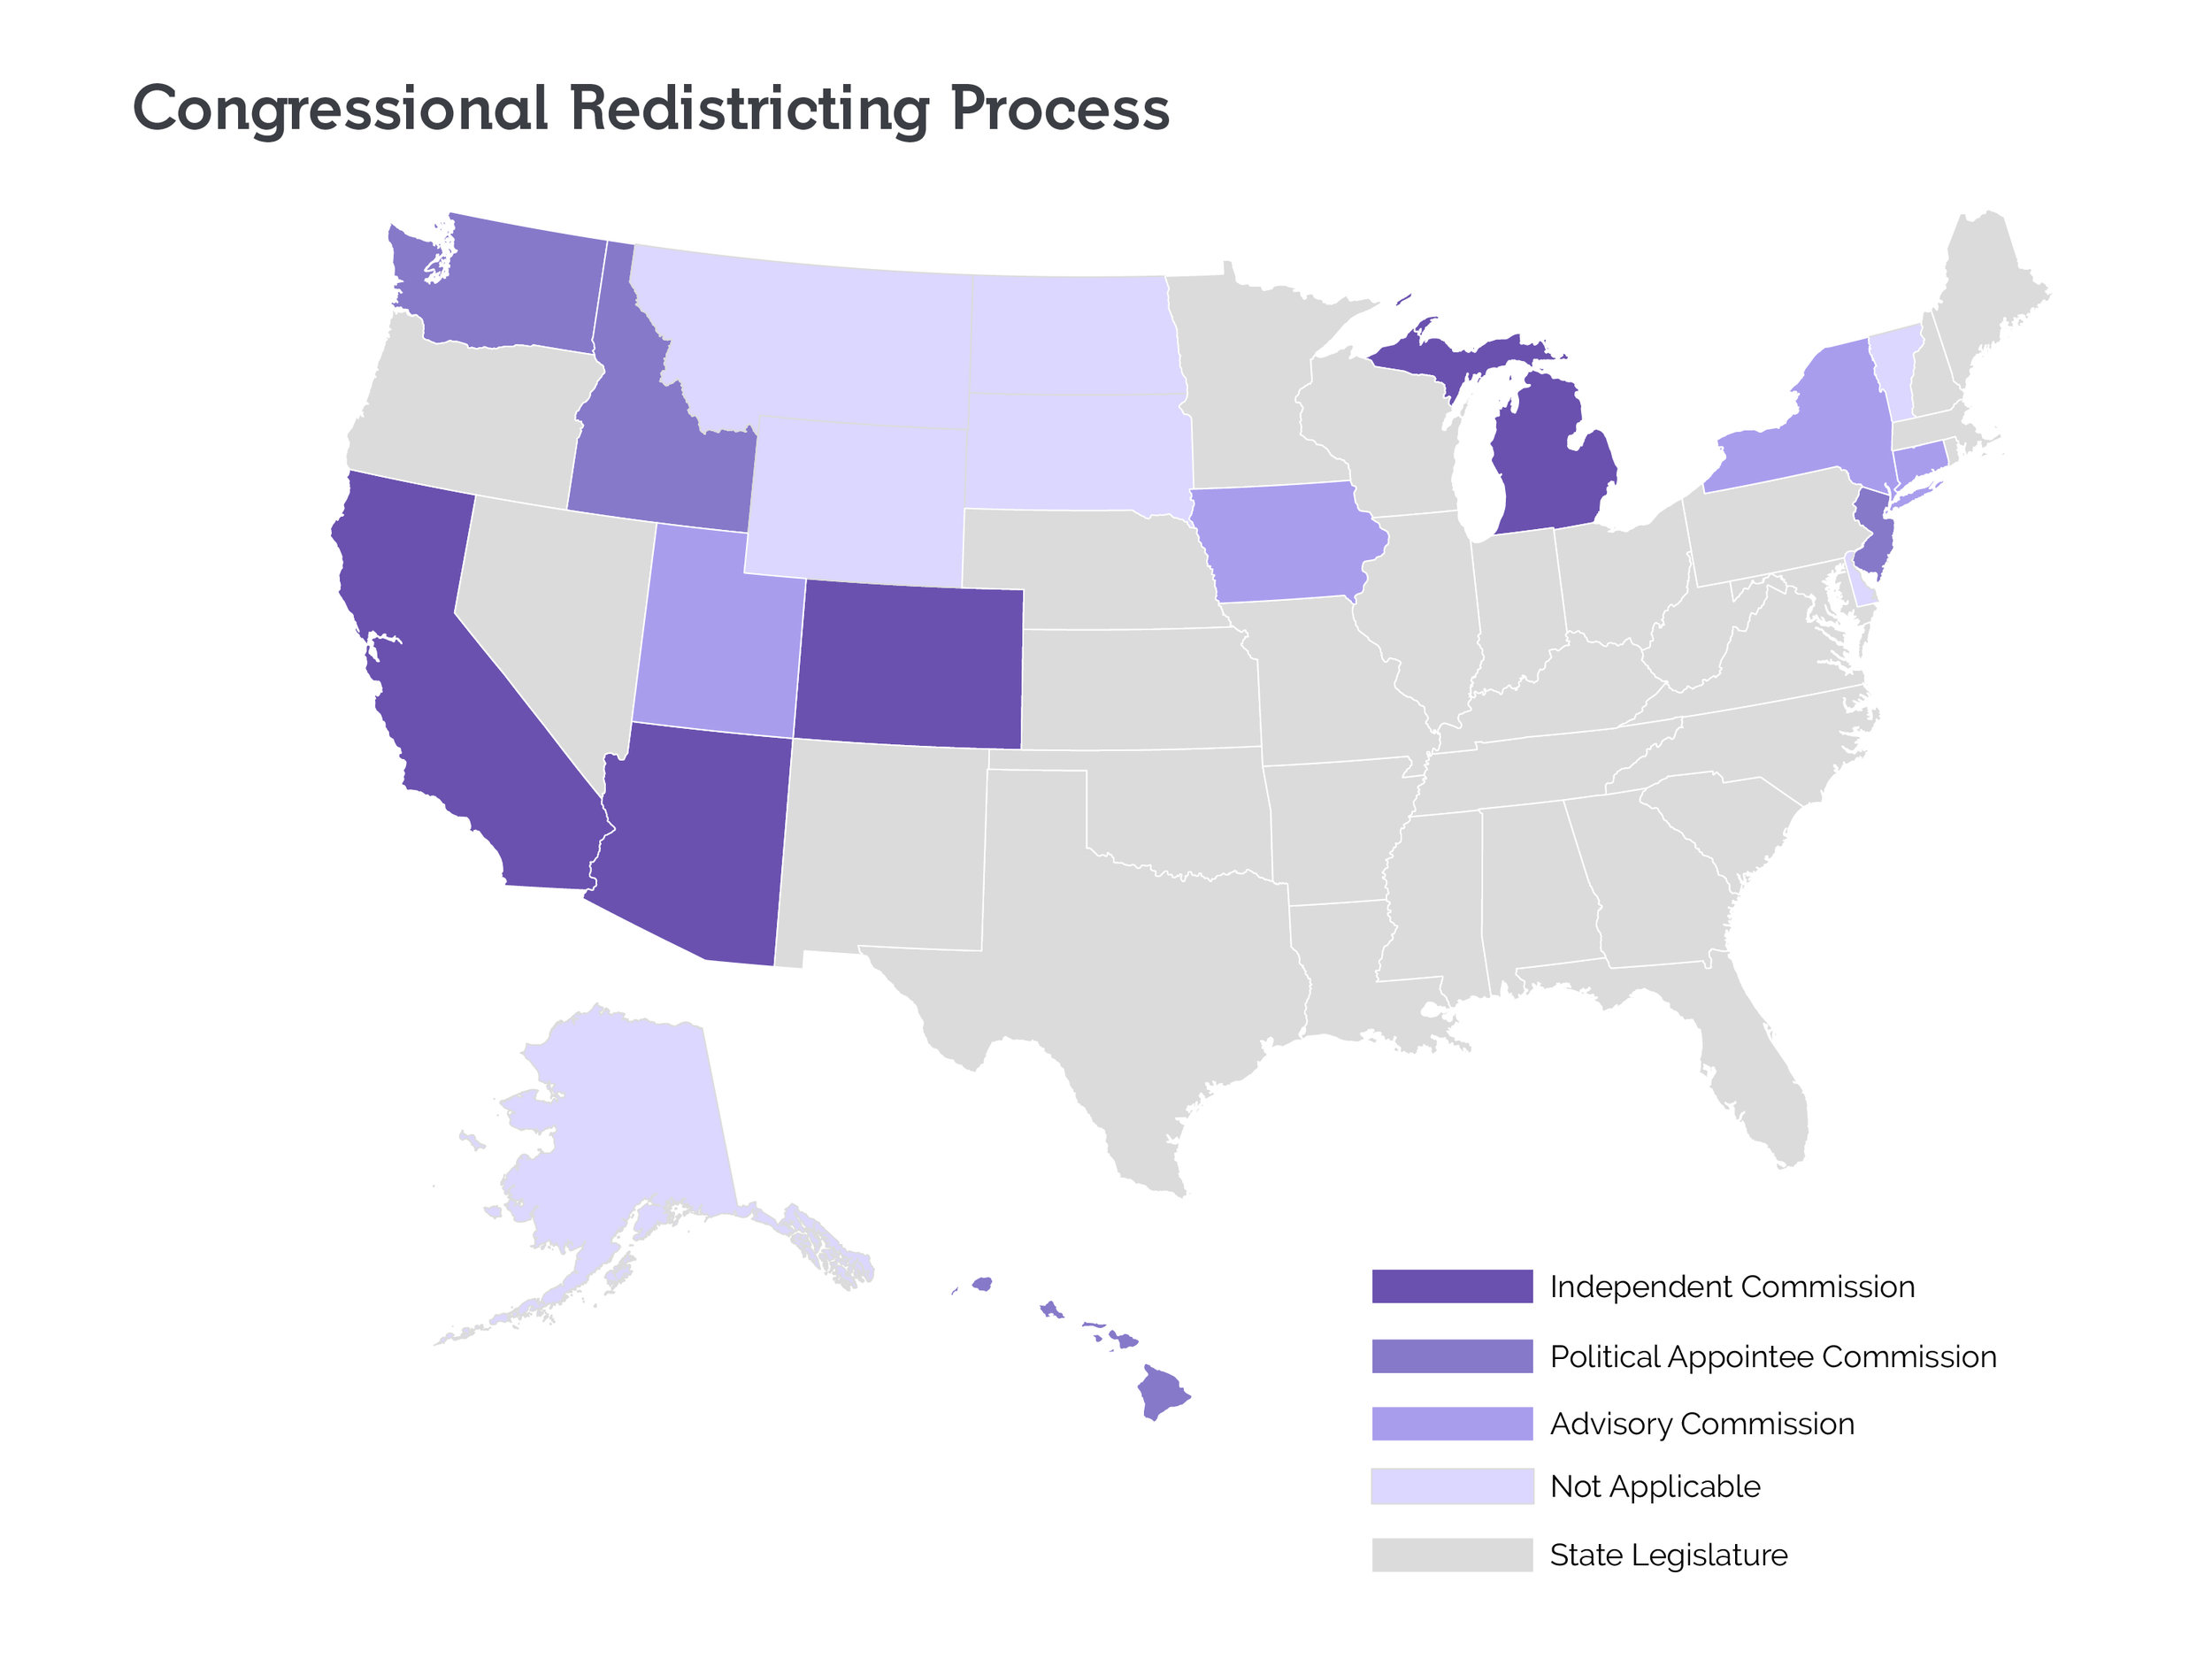 060319_PURPLE MAPs_CONGRESSIONAL REDISTRICTING.JPG